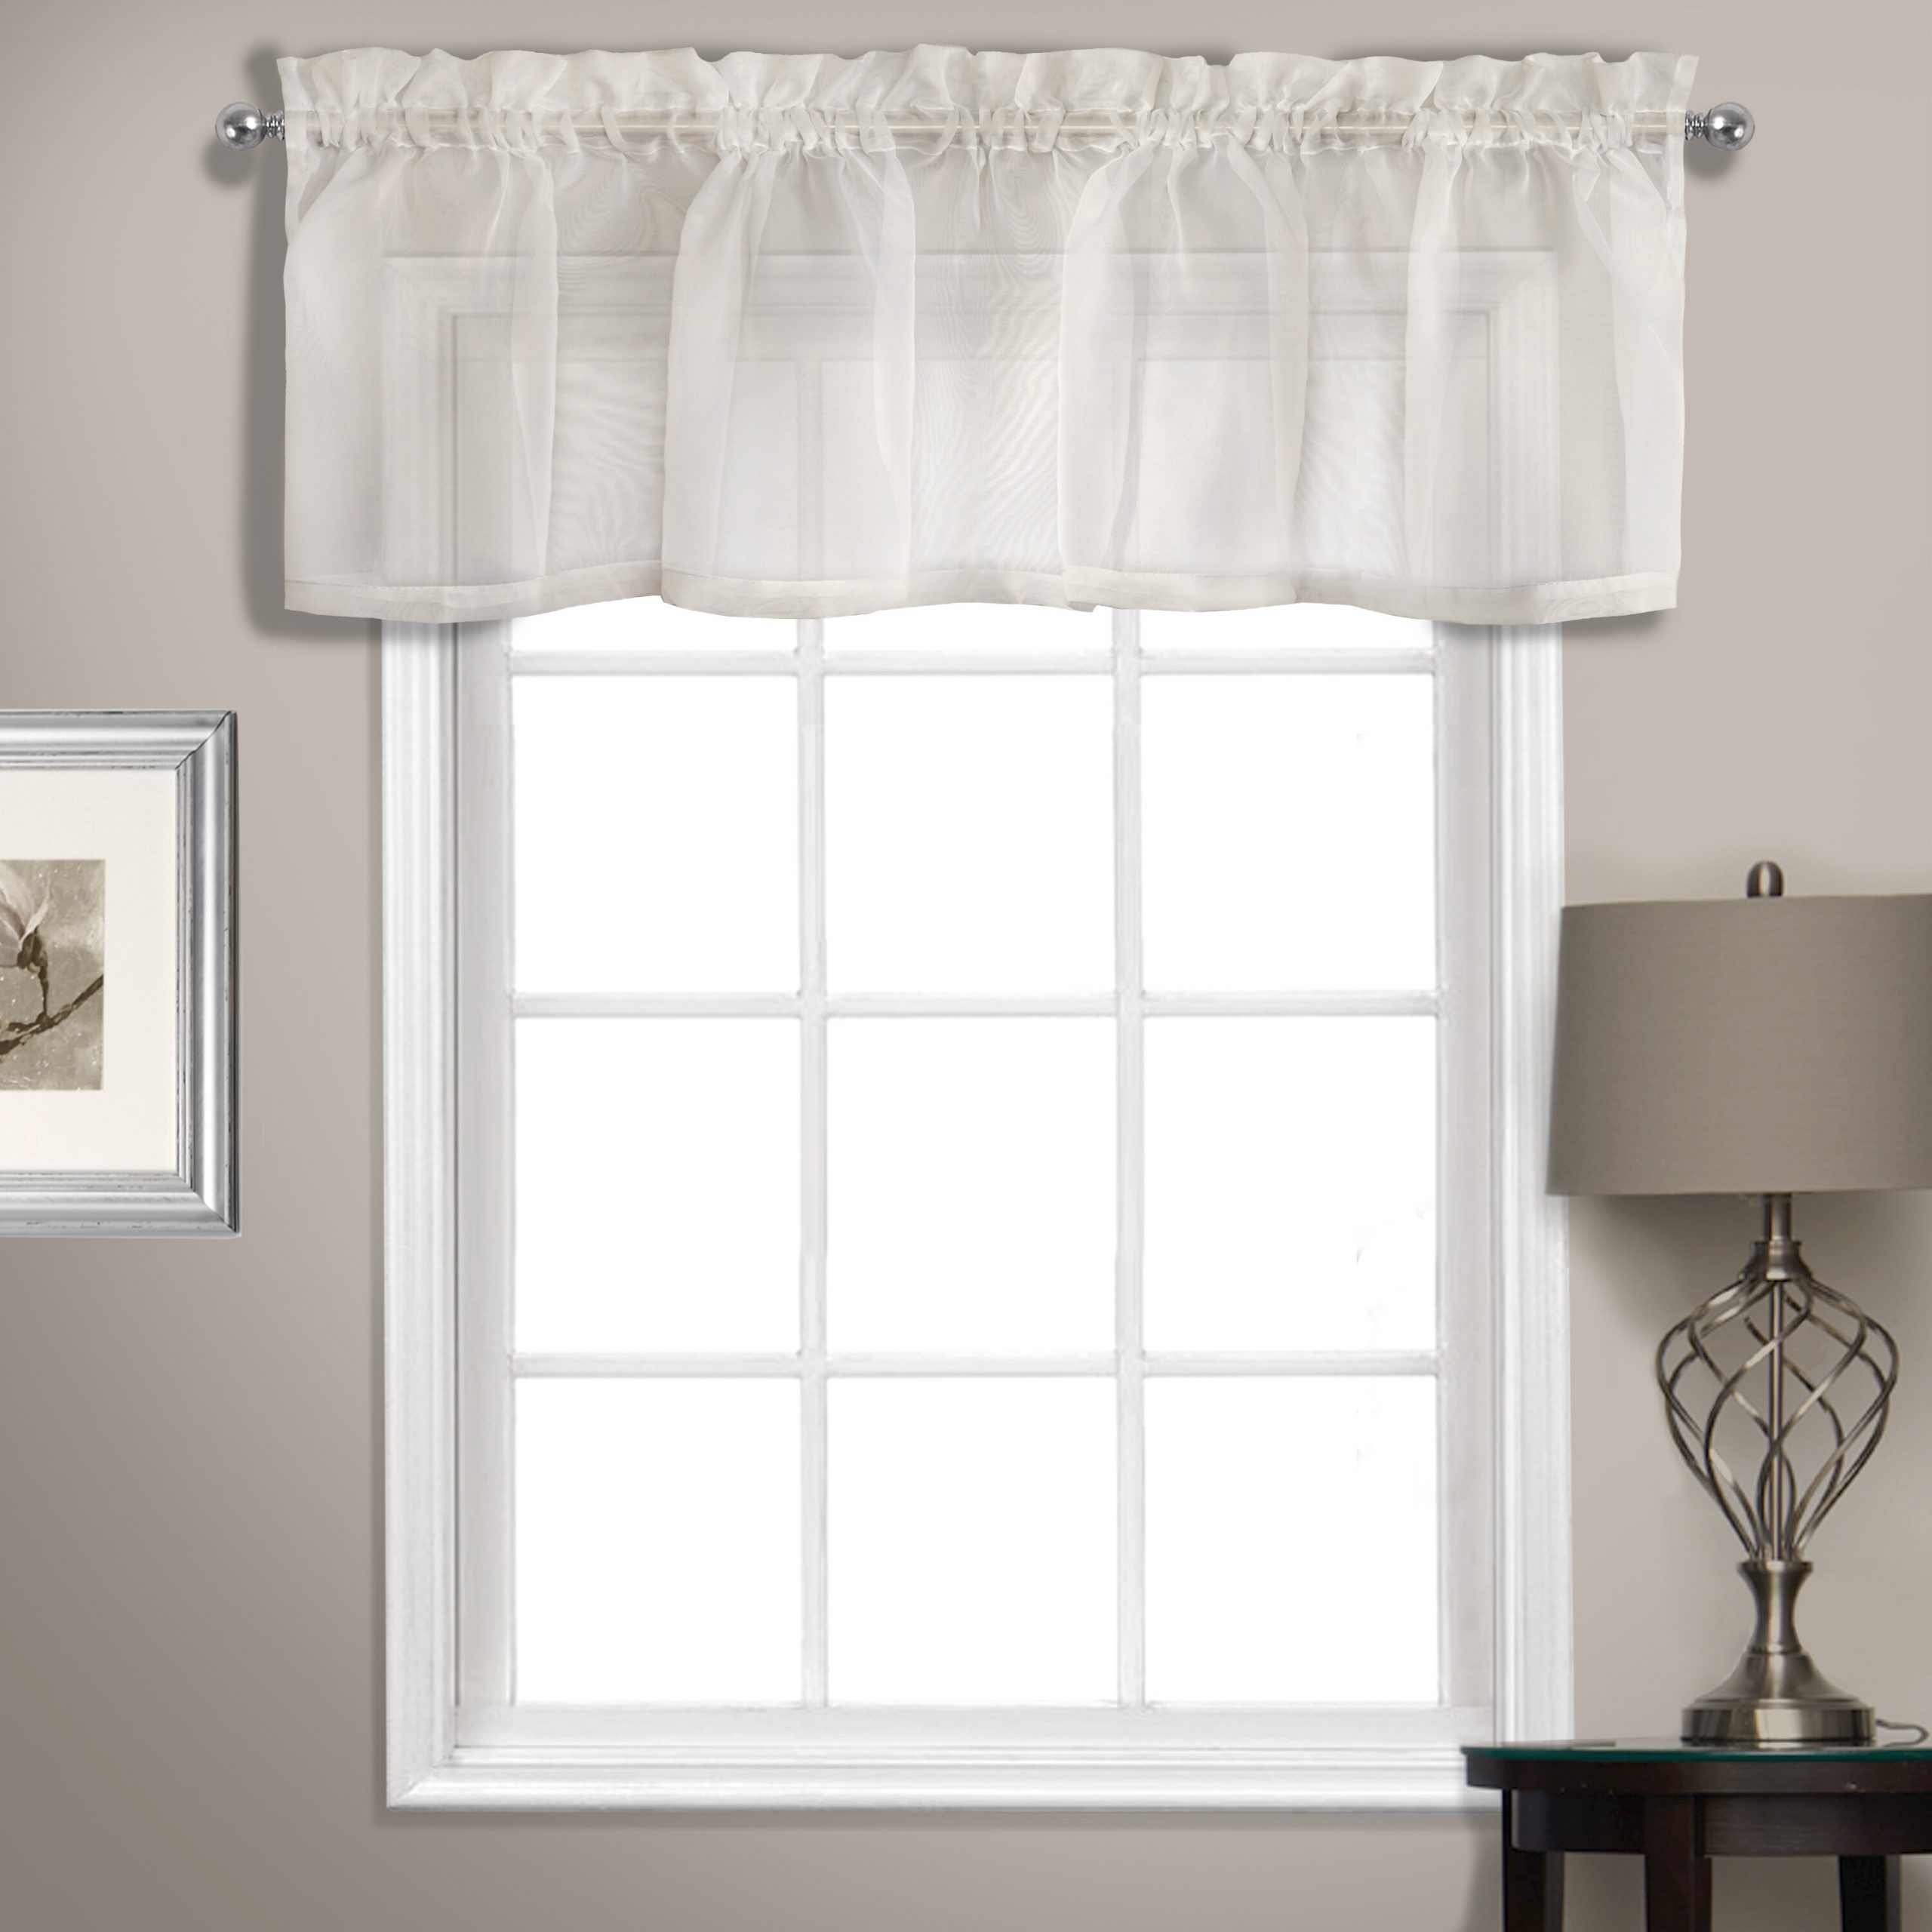 "Rutherford Sheer Voile Straight Topper 56"" Window Valance Inside Luxury Light Filtering Straight Curtain Valances (Photo 10 of 20)"